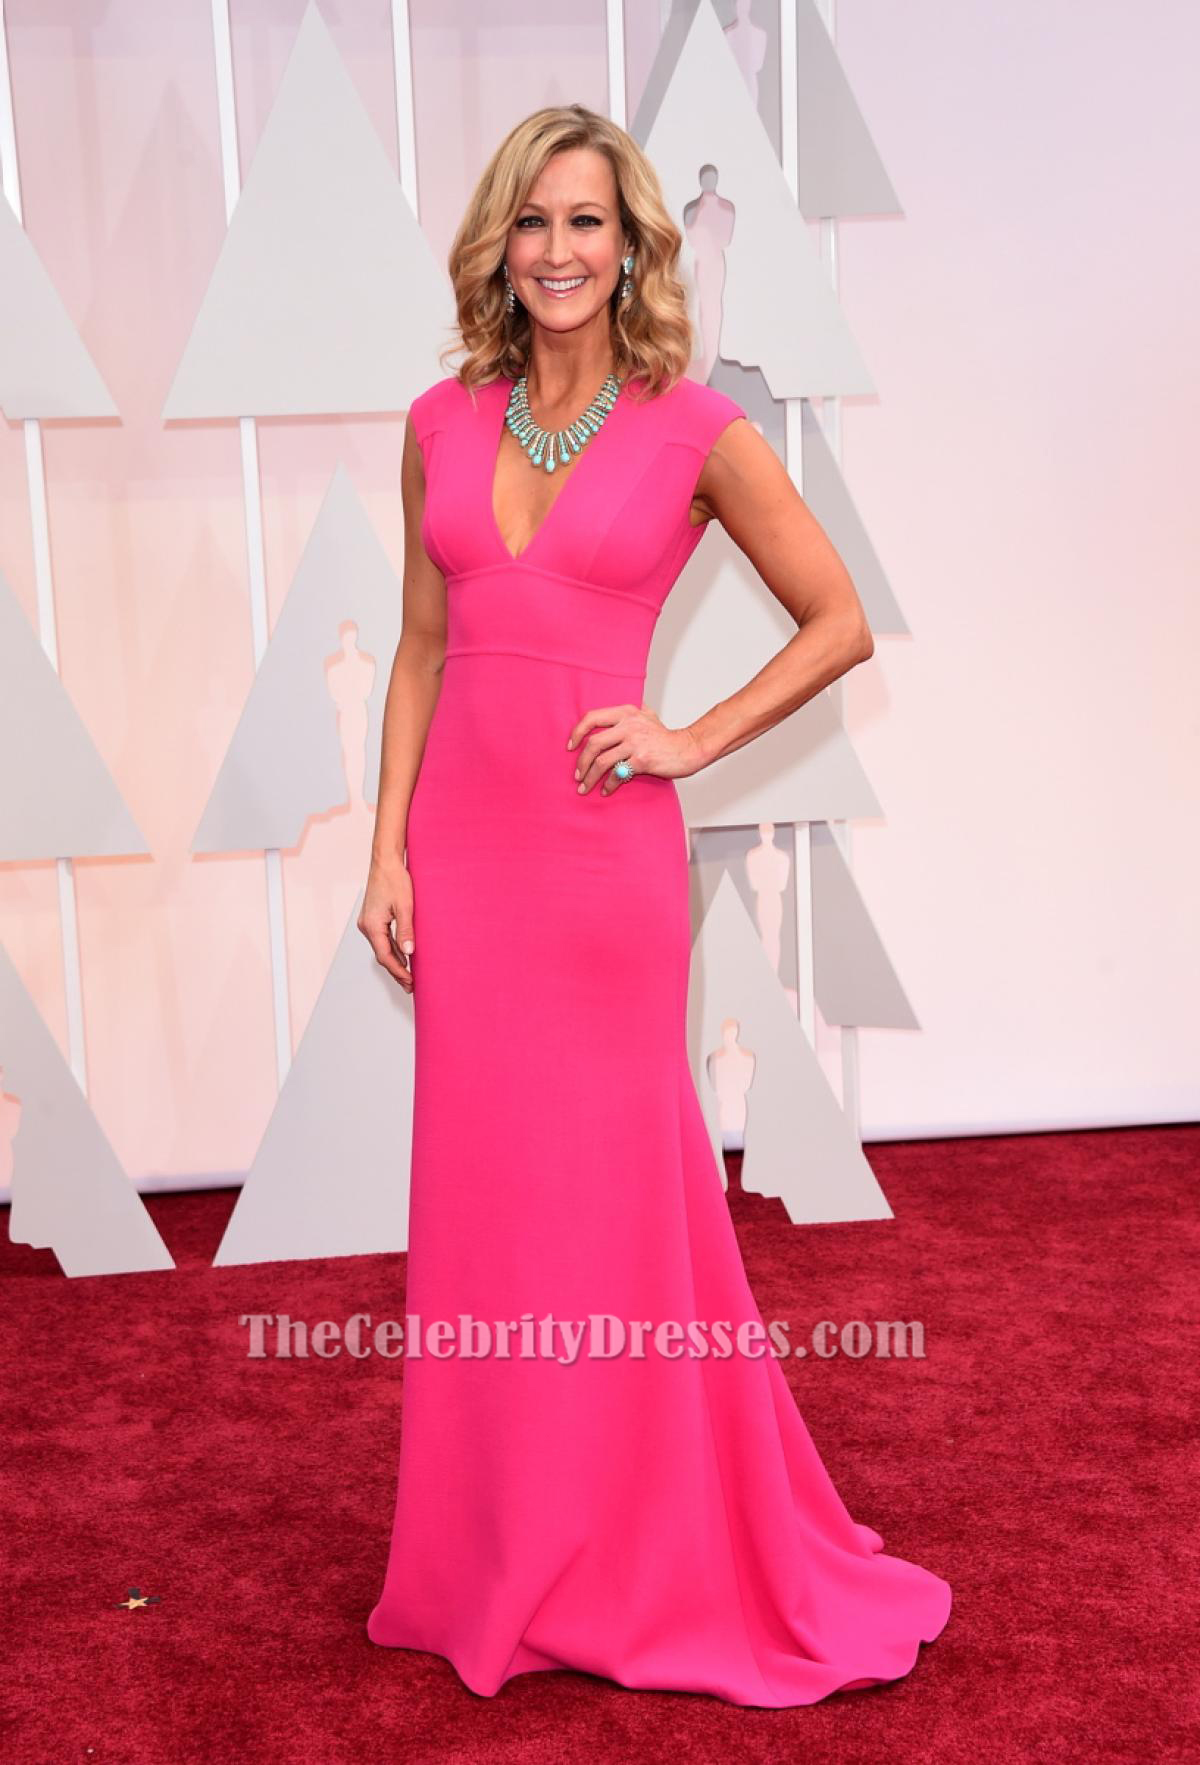 Lara Spencer Hot Pink Formal Dress 2015 Oscars Red Carpet ...